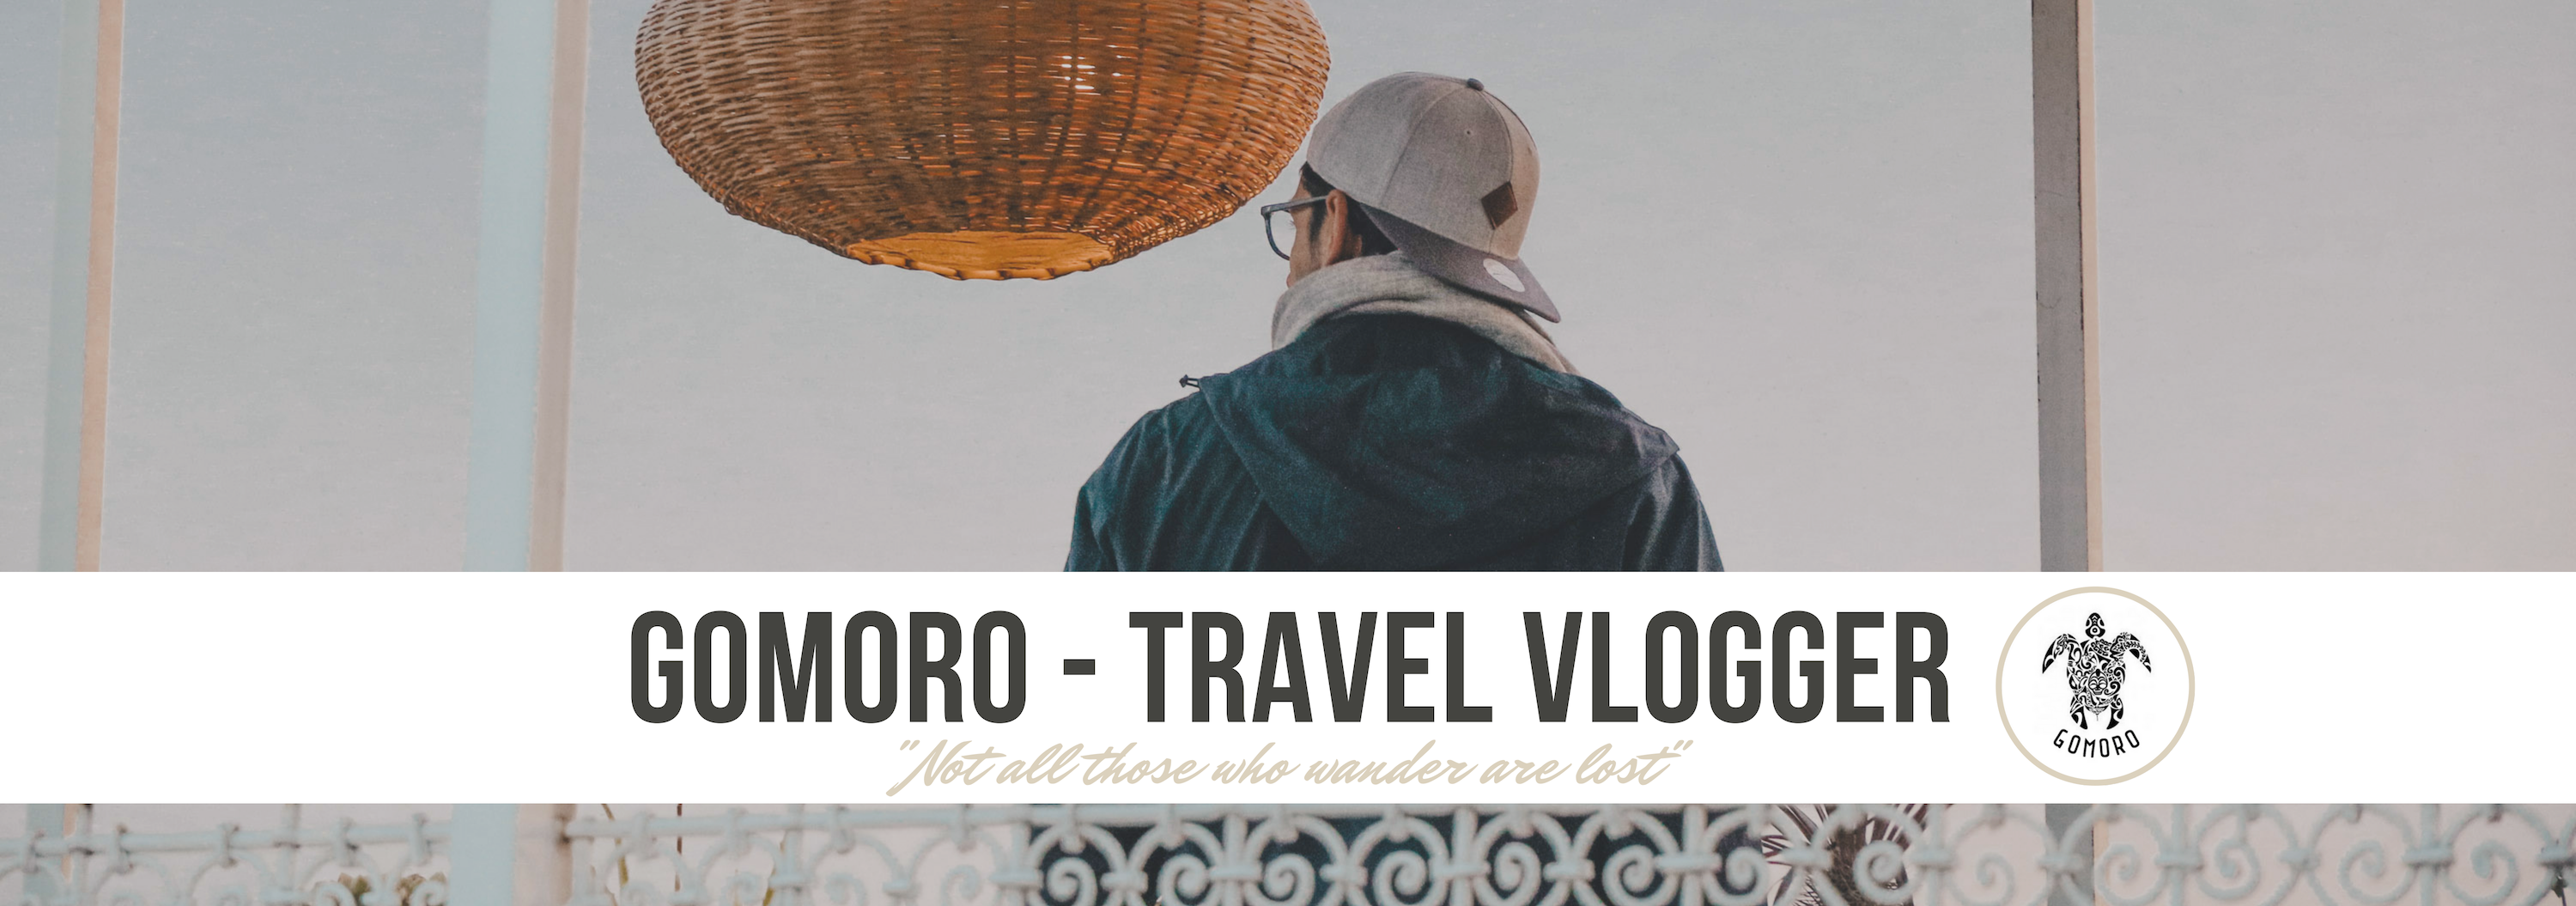 GoMoro – Travel Vlogger -